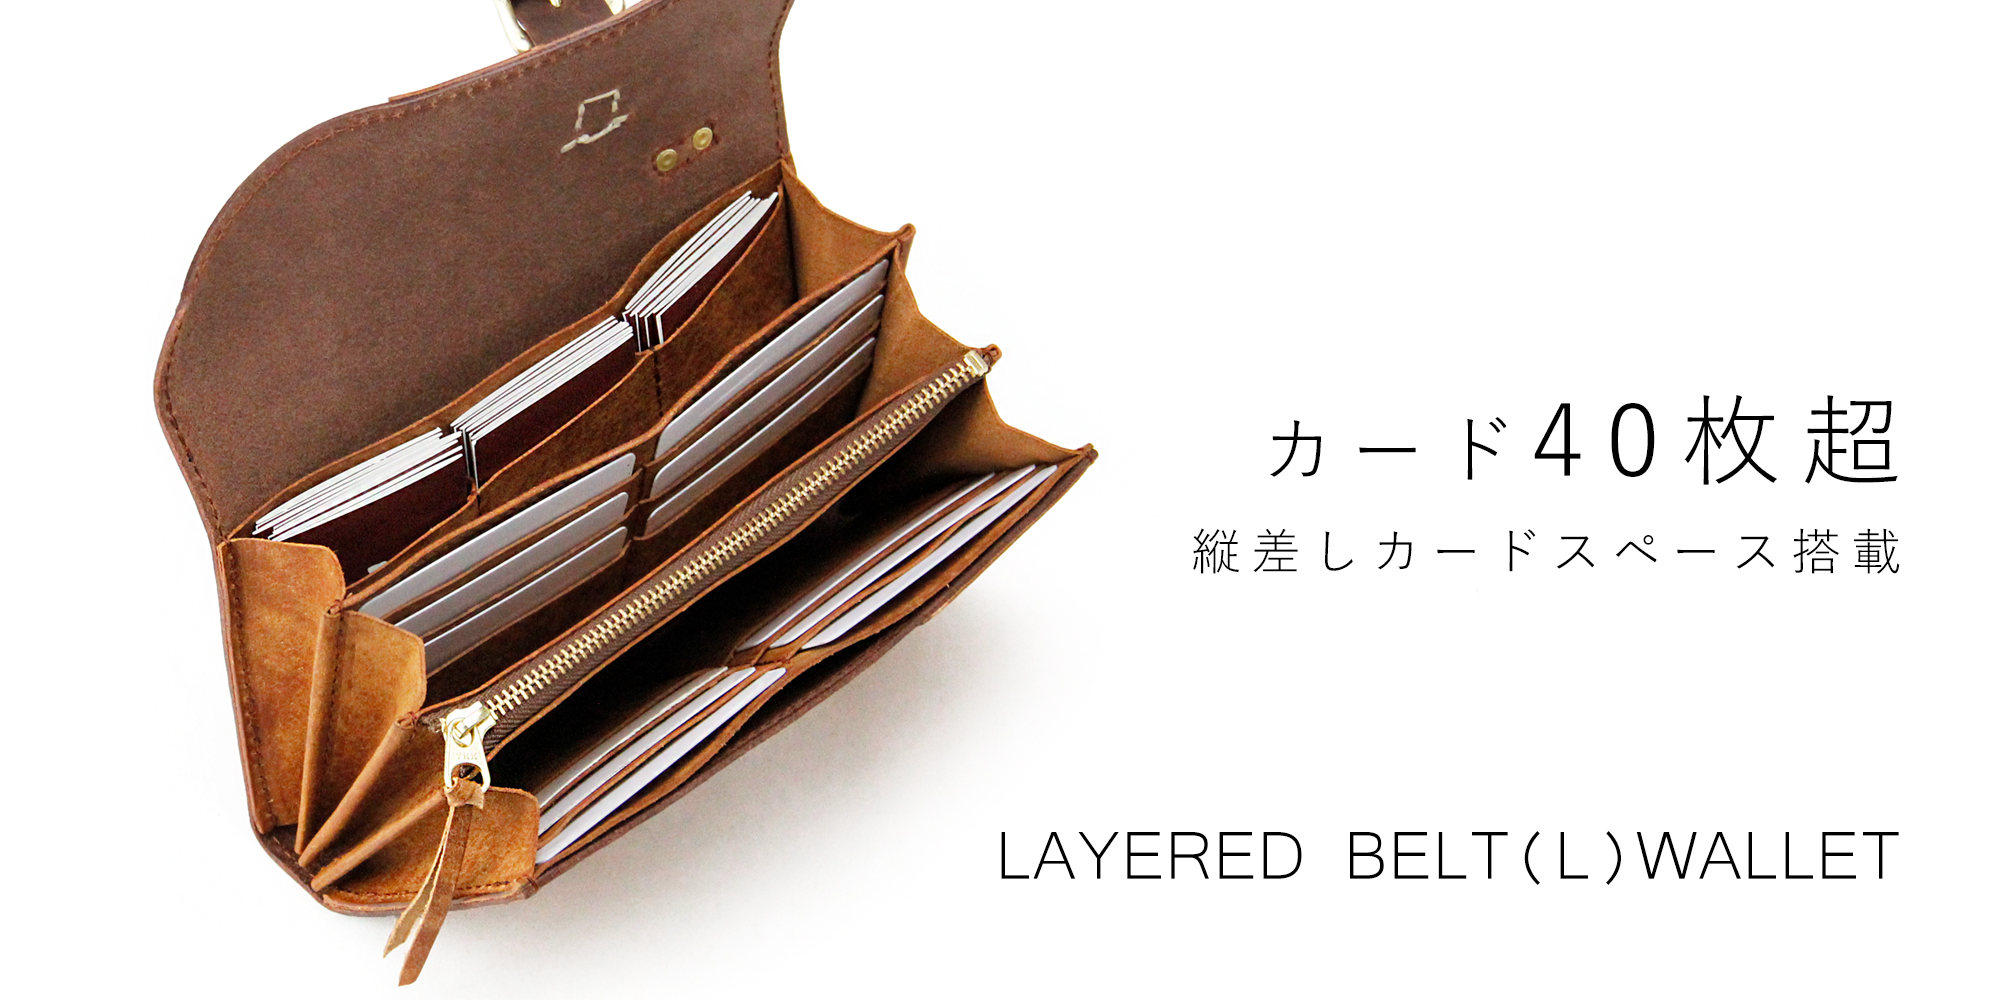 Pick Up / Ryu LAYERED BELT(L)WALLET